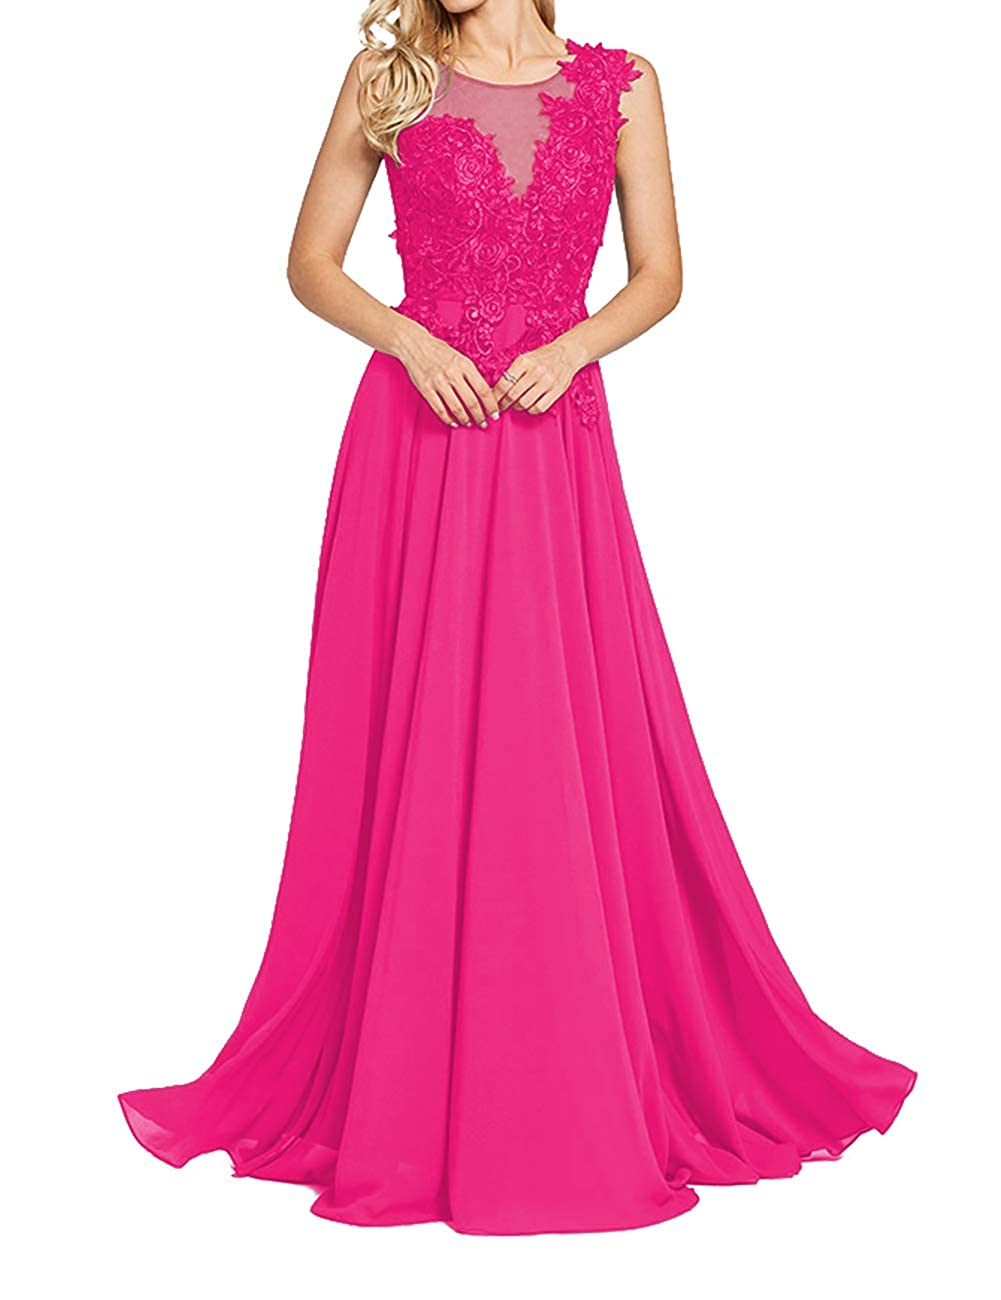 Fuchsia Uther Formal Evening Prom Dresses Long Appliques Bridesmaid Dress for Women Sleeveless